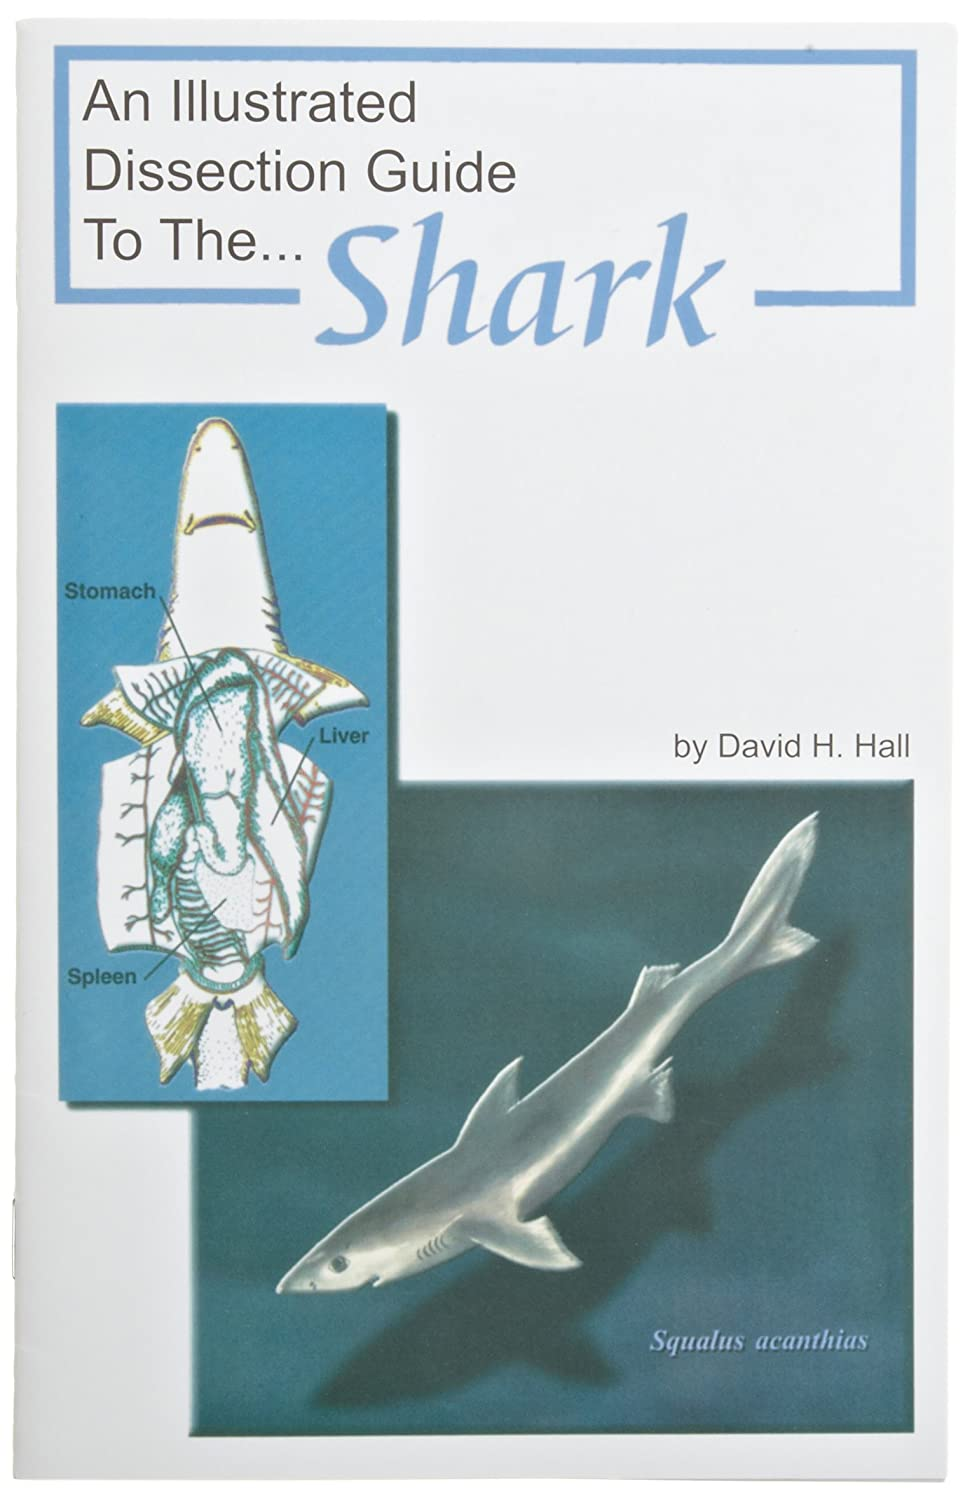 Frey Scientific 597177 Mini-Guide to Shark Dissection